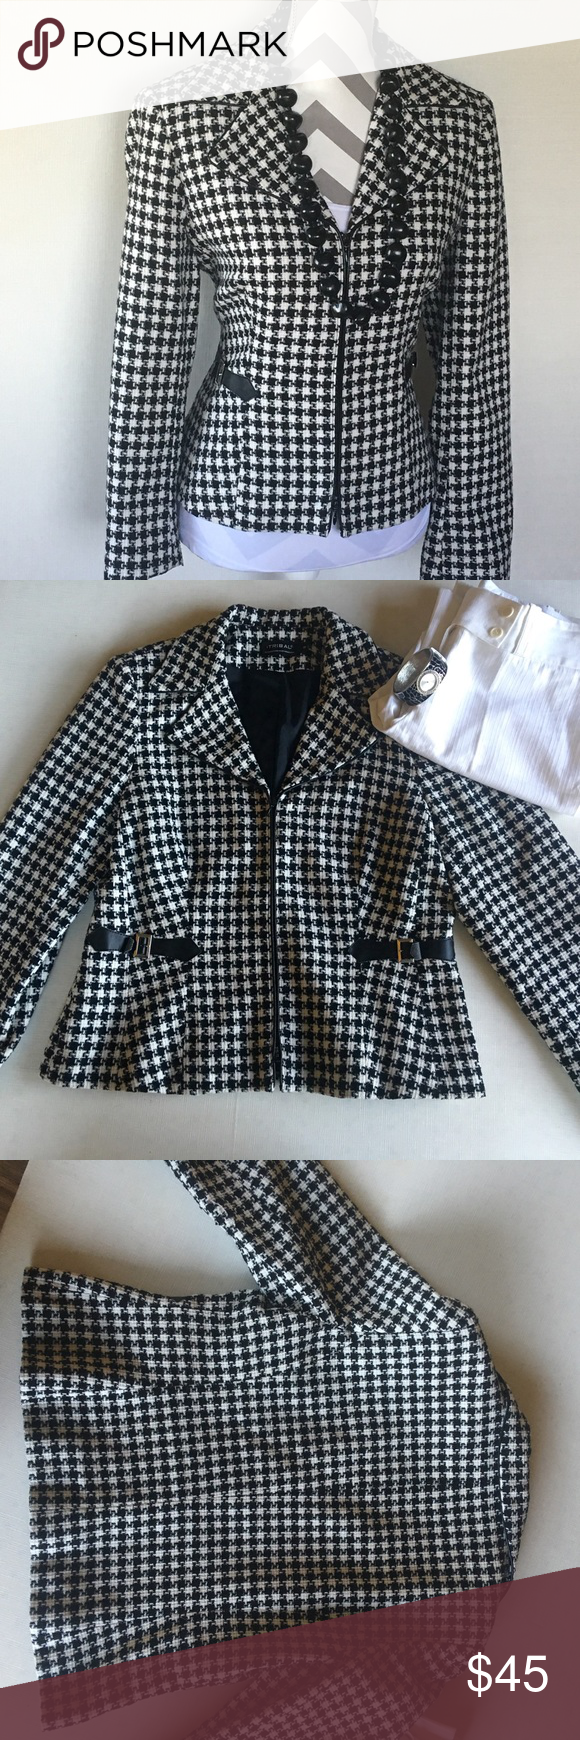 Tribal black/white checker dress  coat This coat is co cute and warm. Looks amazing with just about anything. In excellent condition. No flaws. Fully lined. Zips up. Tribal Jackets & Coats Blazers